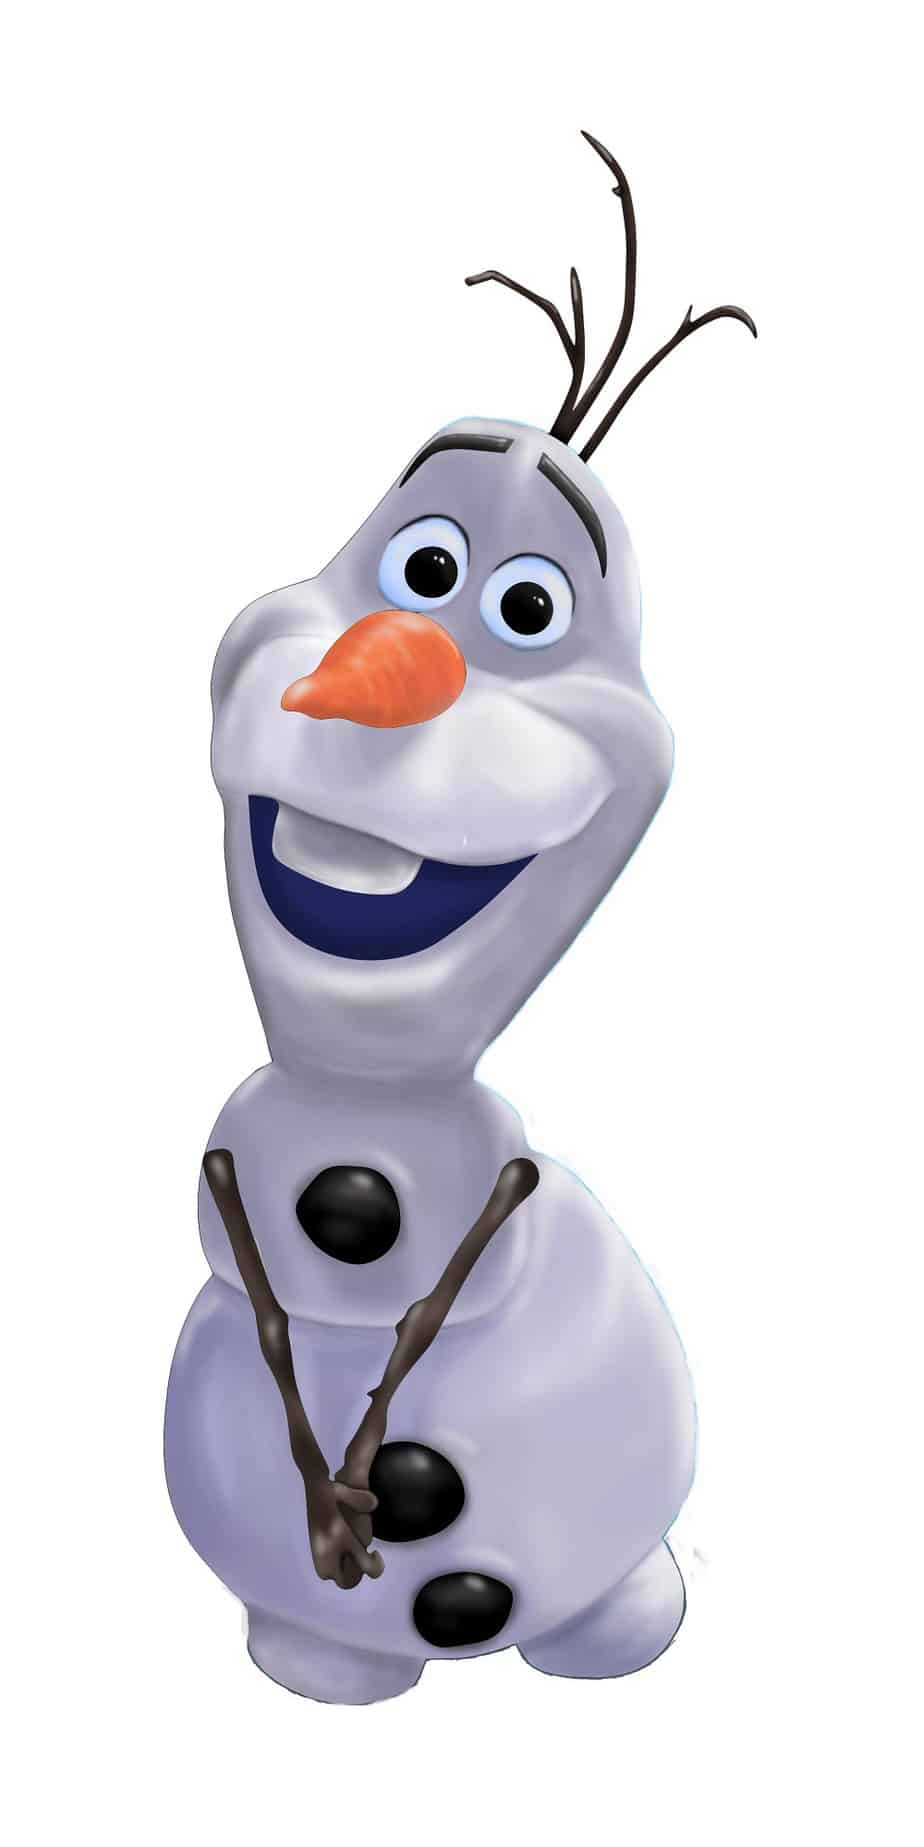 50 Olaf Quotes From Disney's Iconic Snowman from Frozen